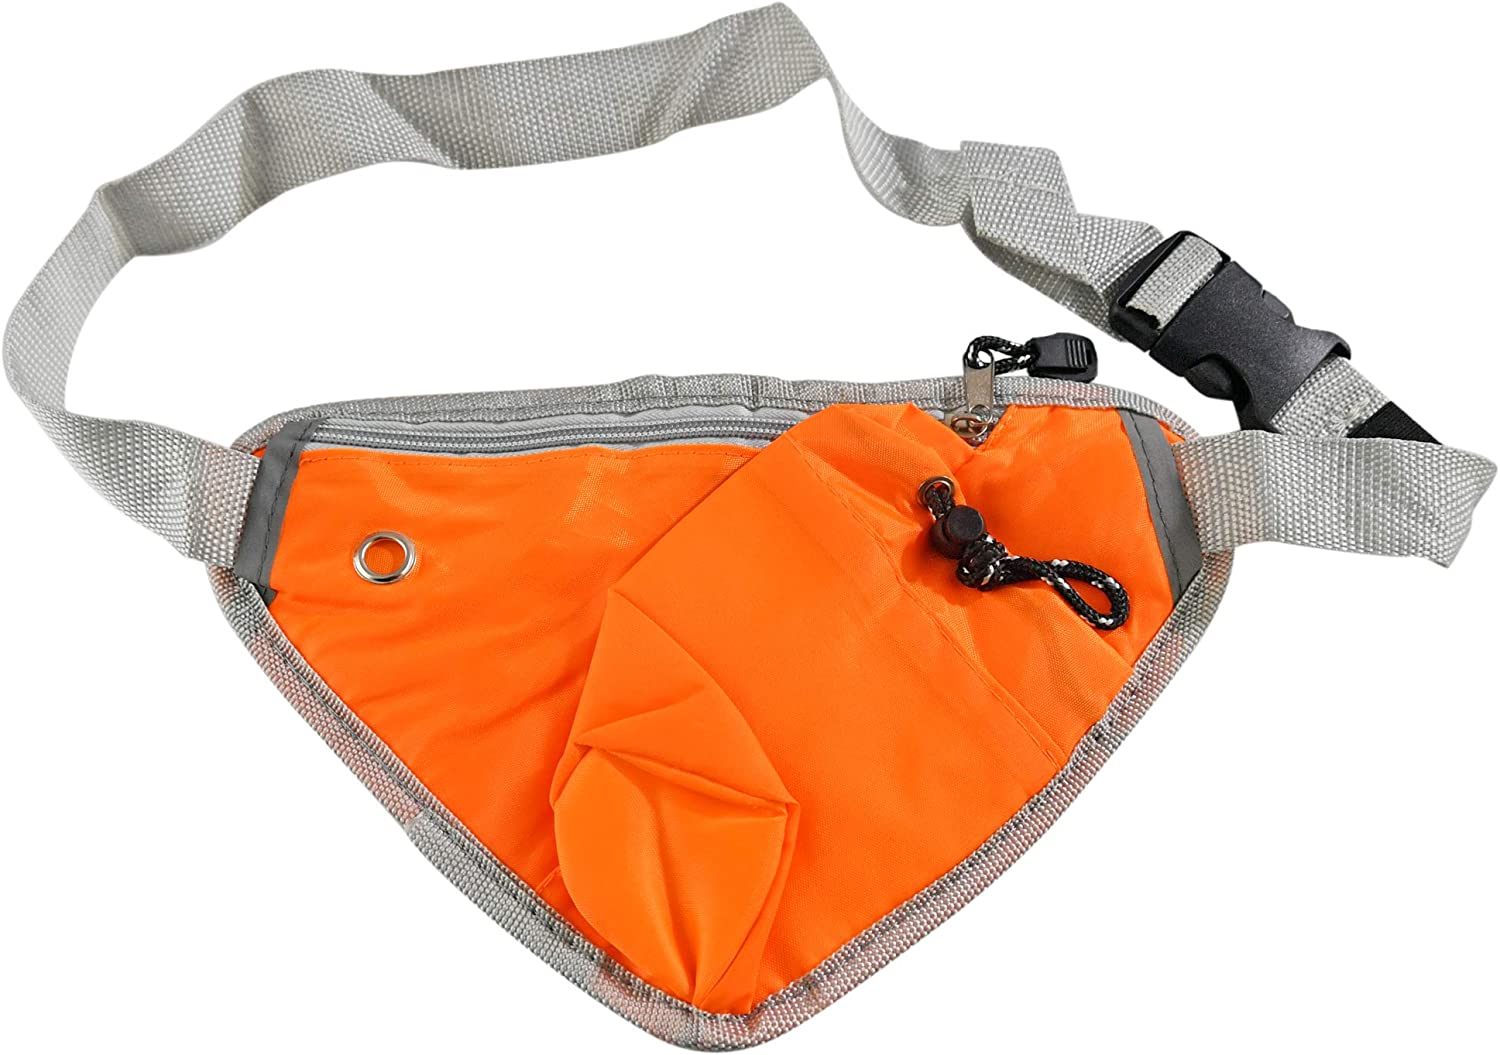 "Home-X Hiking Waist Bag Fanny Pack w/Water Bottle Holder, Running & Dog Walking, Adjustable Waist Belt Bag Running Belt Sport Waist Pack/Pouch with Water Bottle Cellphone Holder-10 x6.5"", Orange"